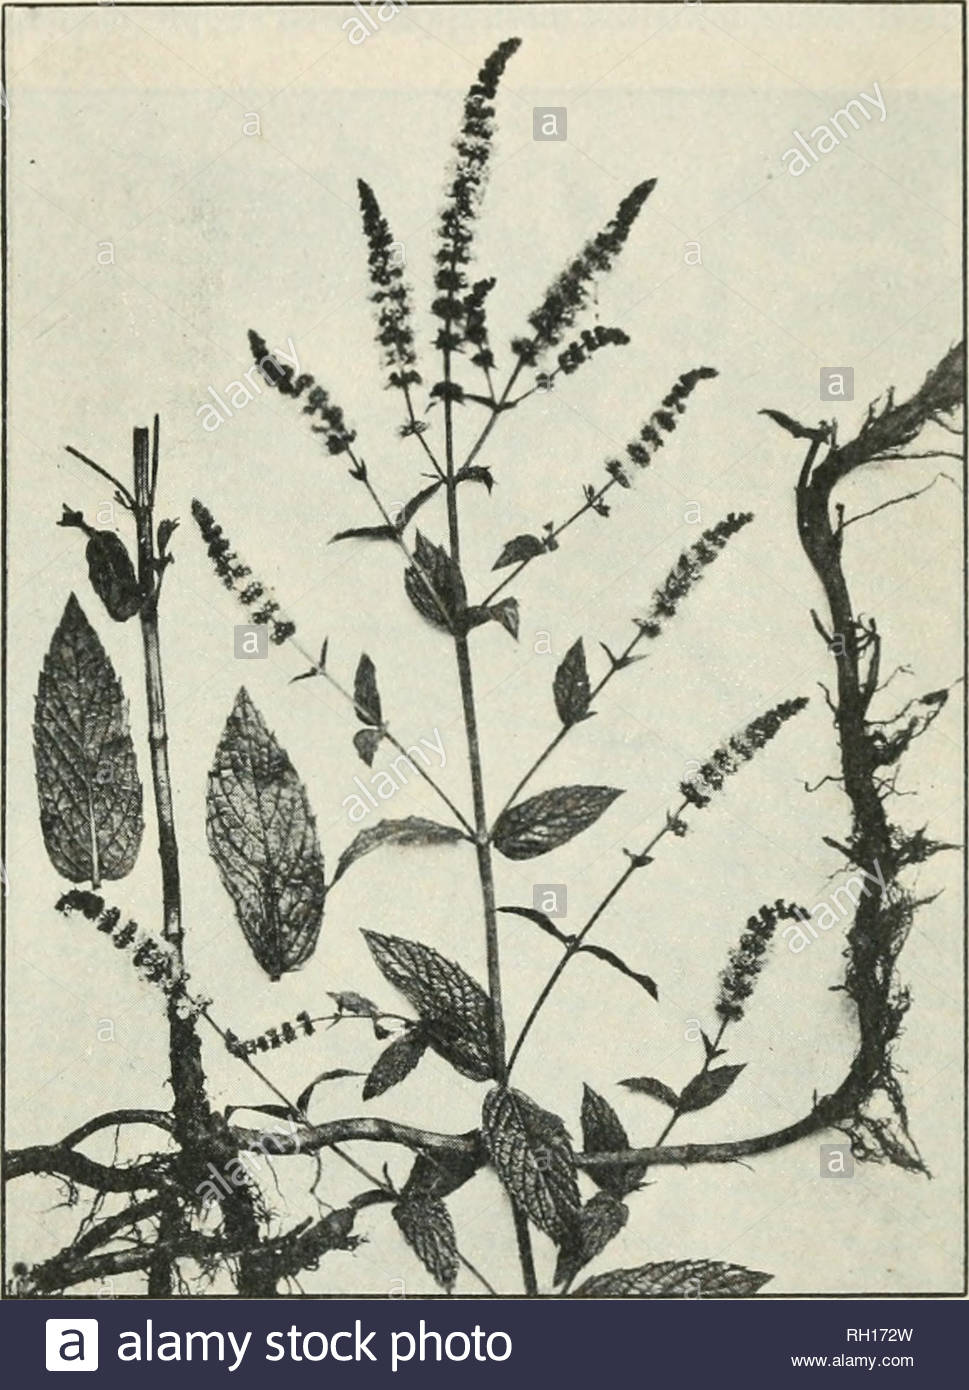 bulletin agriculture plants furnishing medicinal leaves and herbs 29 the oil which is obtainod y distillation with wafltr from the fresh or partially dried leaves and howerinlt tops is also oliicial in the lnittul states pharmacoixria while a less acreage was devoted to peppermint dunnlt 1910 conditions were favorable to its growth and the crop is estimated to have amounted to about pounds the wholesale quotations for peppermint oil in the spring of 1911 ranged from 285 to 295 a jxmnd spearmint mentha spicata l pharmacopaidj luimc mentha viridis synonym RH172W